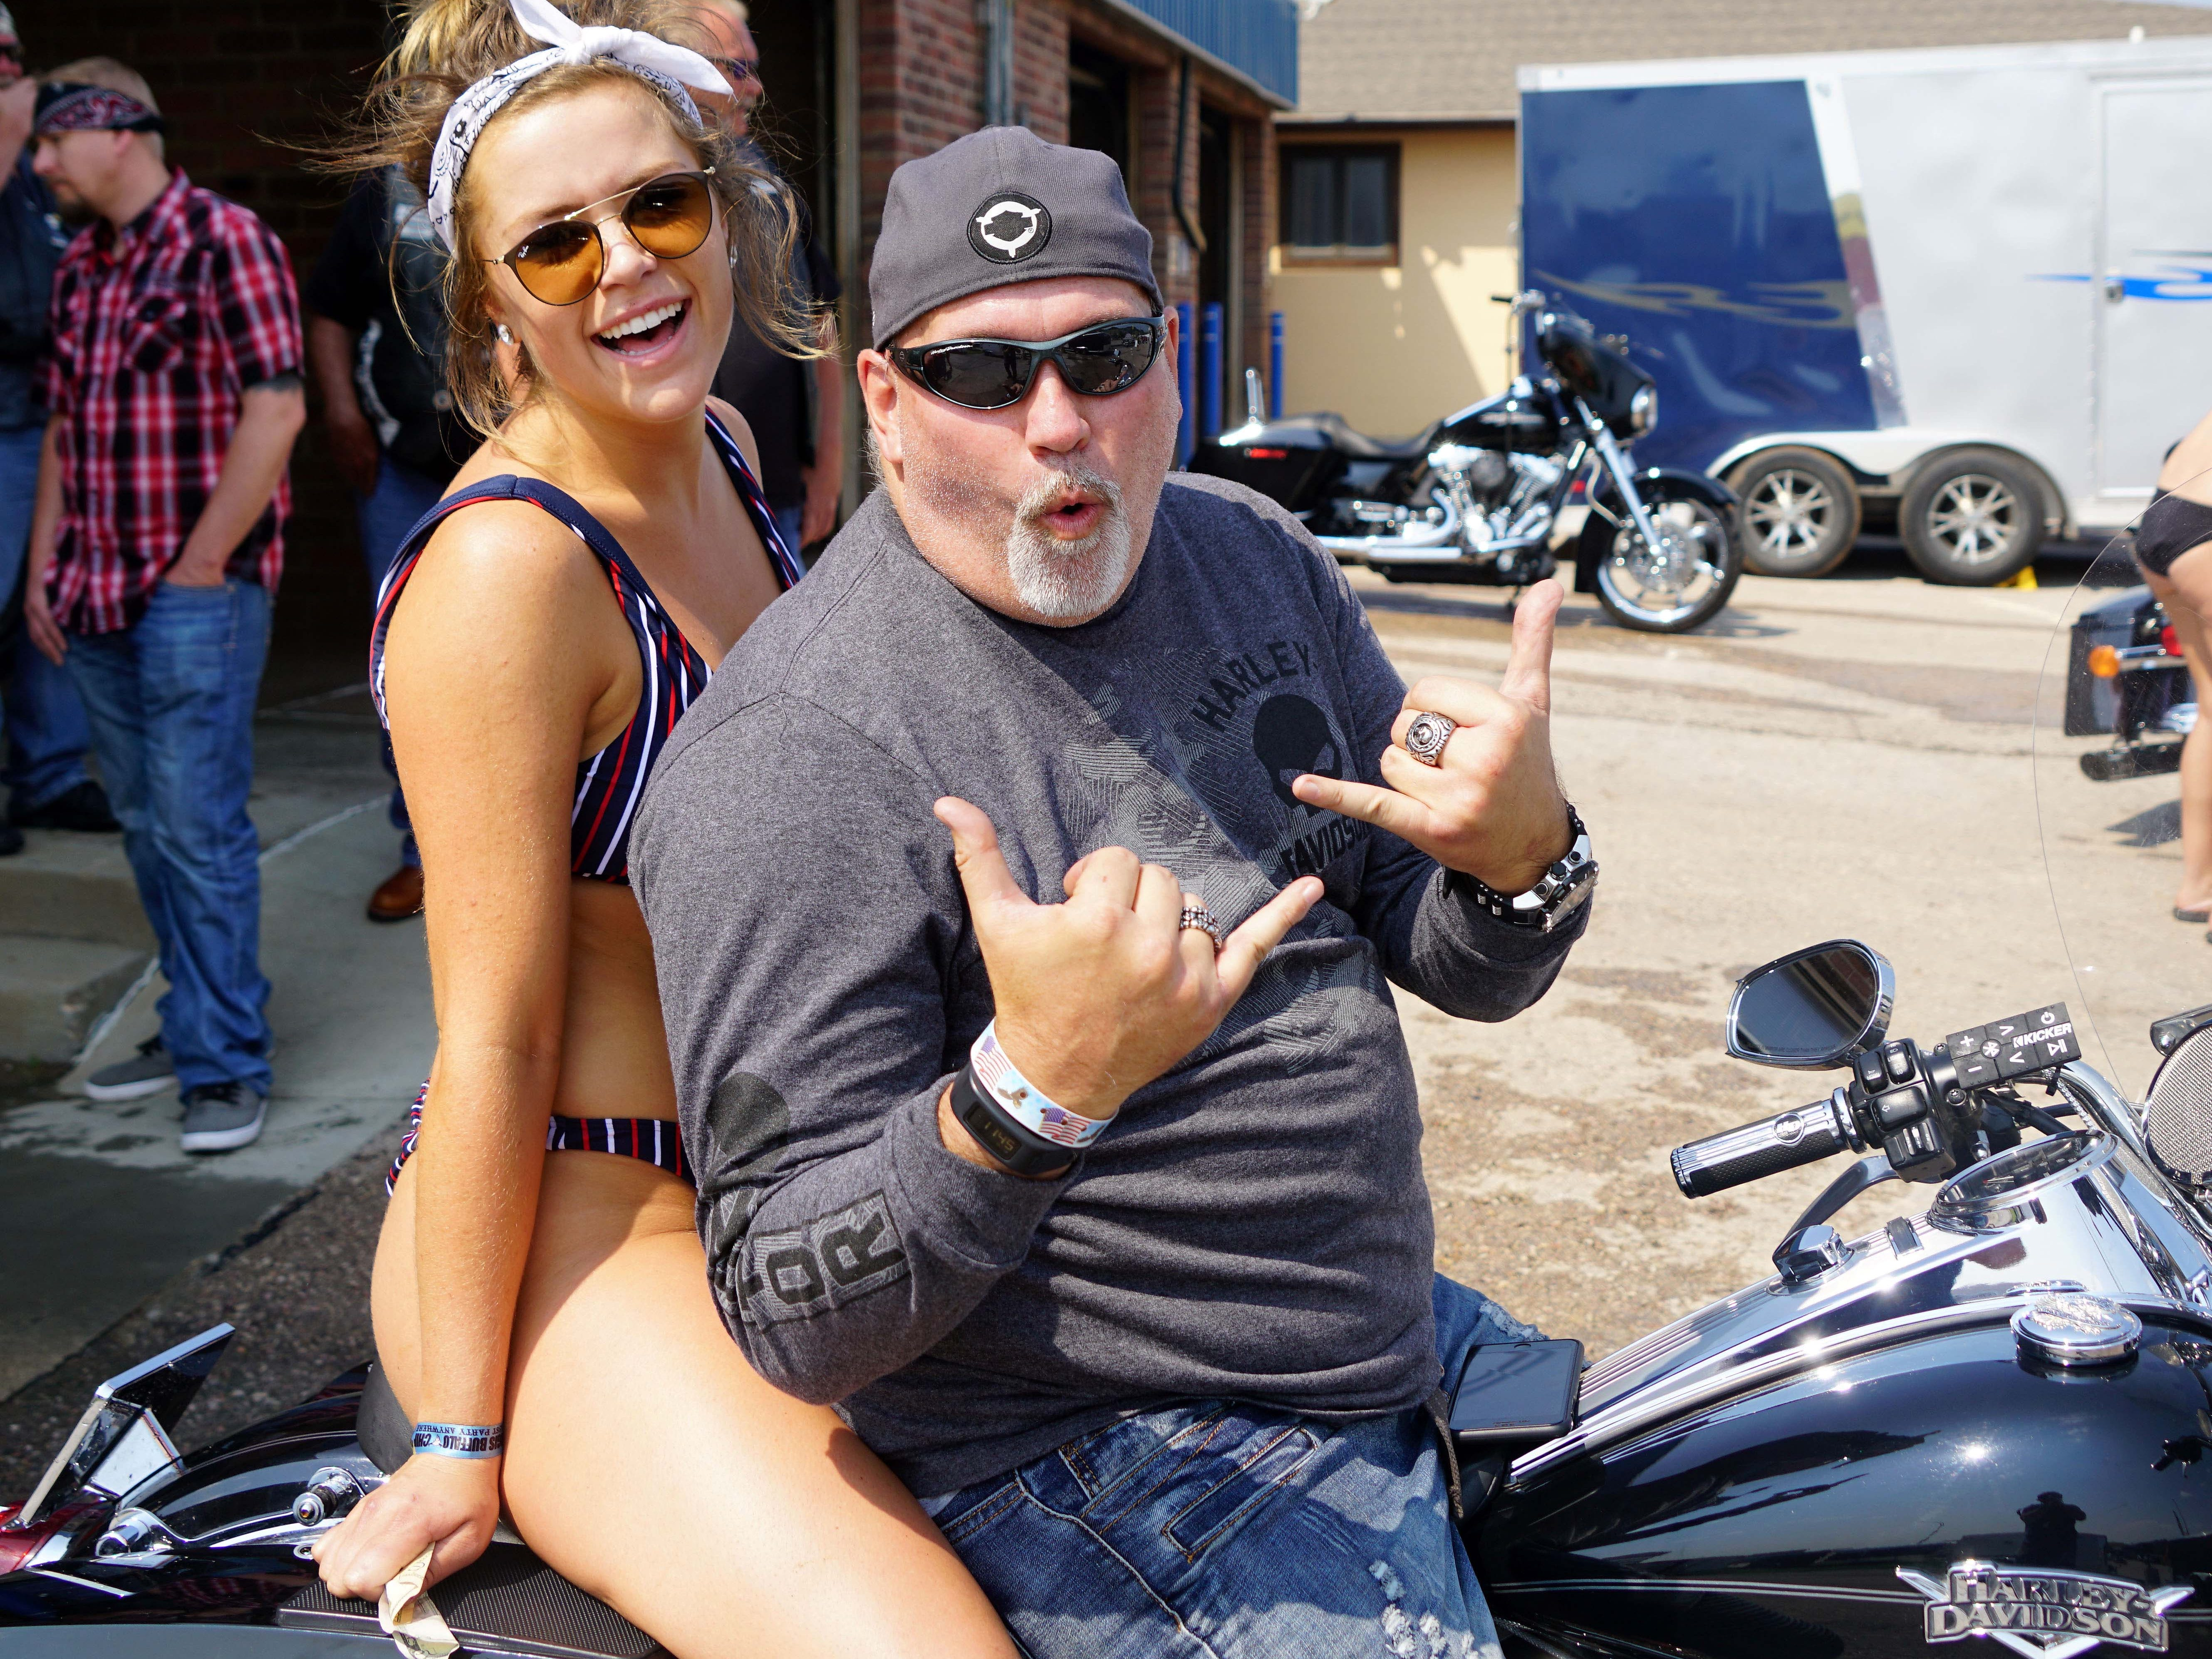 2018: A common sight at the Sturgis rally.